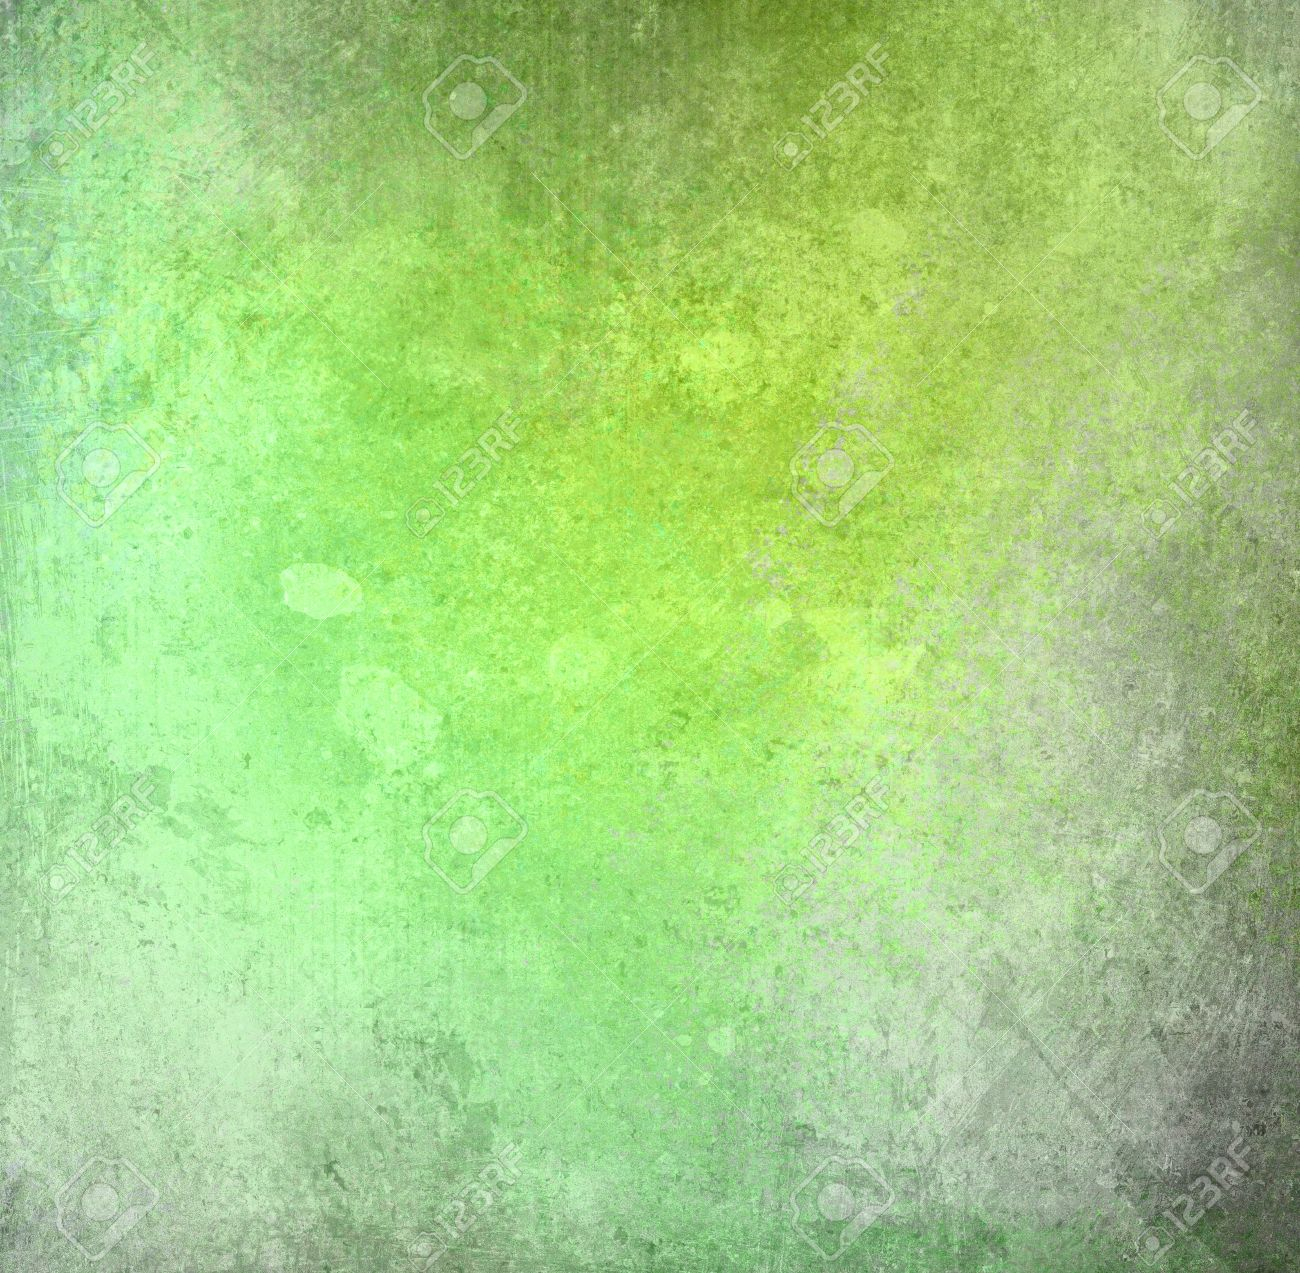 Cool colors web design - Cool Colors Web Design Stock Photo Abstract Green Background Yellow Color Light Cool Background Vintage